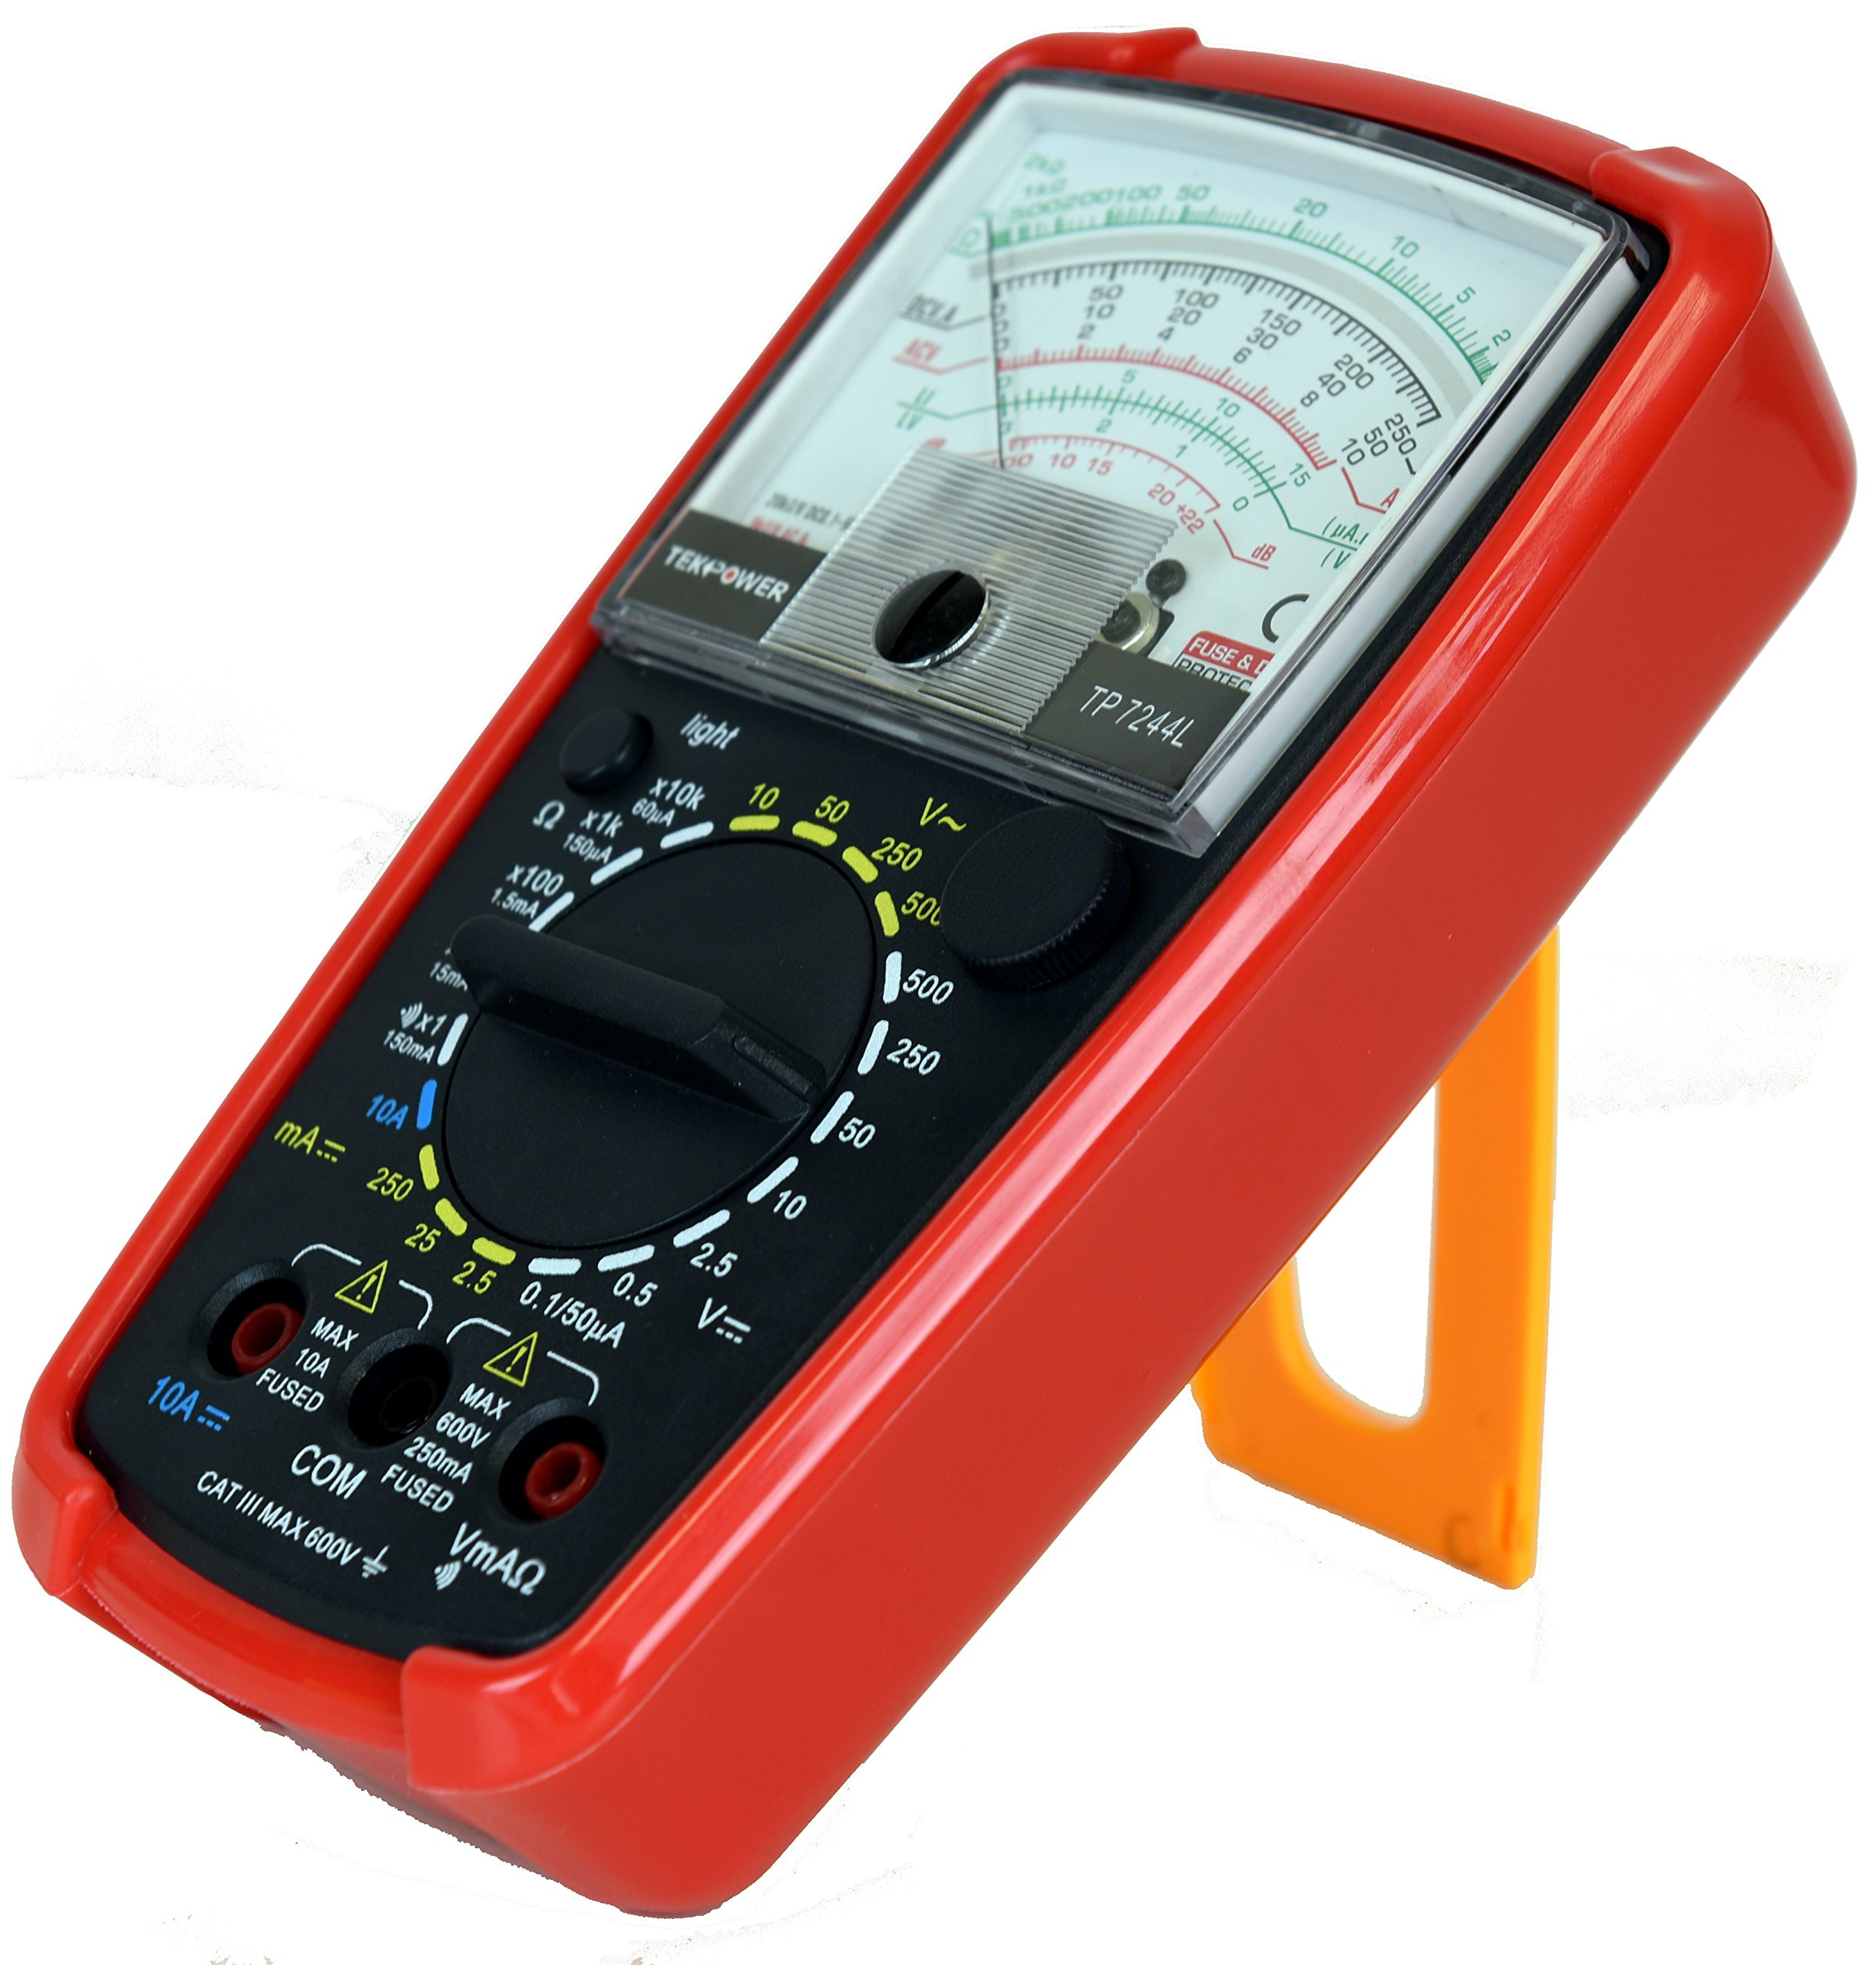 Tekpower TP7244L 7-Function 20-Range Analog Multimeter With Back Light with Strong Protective Holster by Tekpower (Image #5)